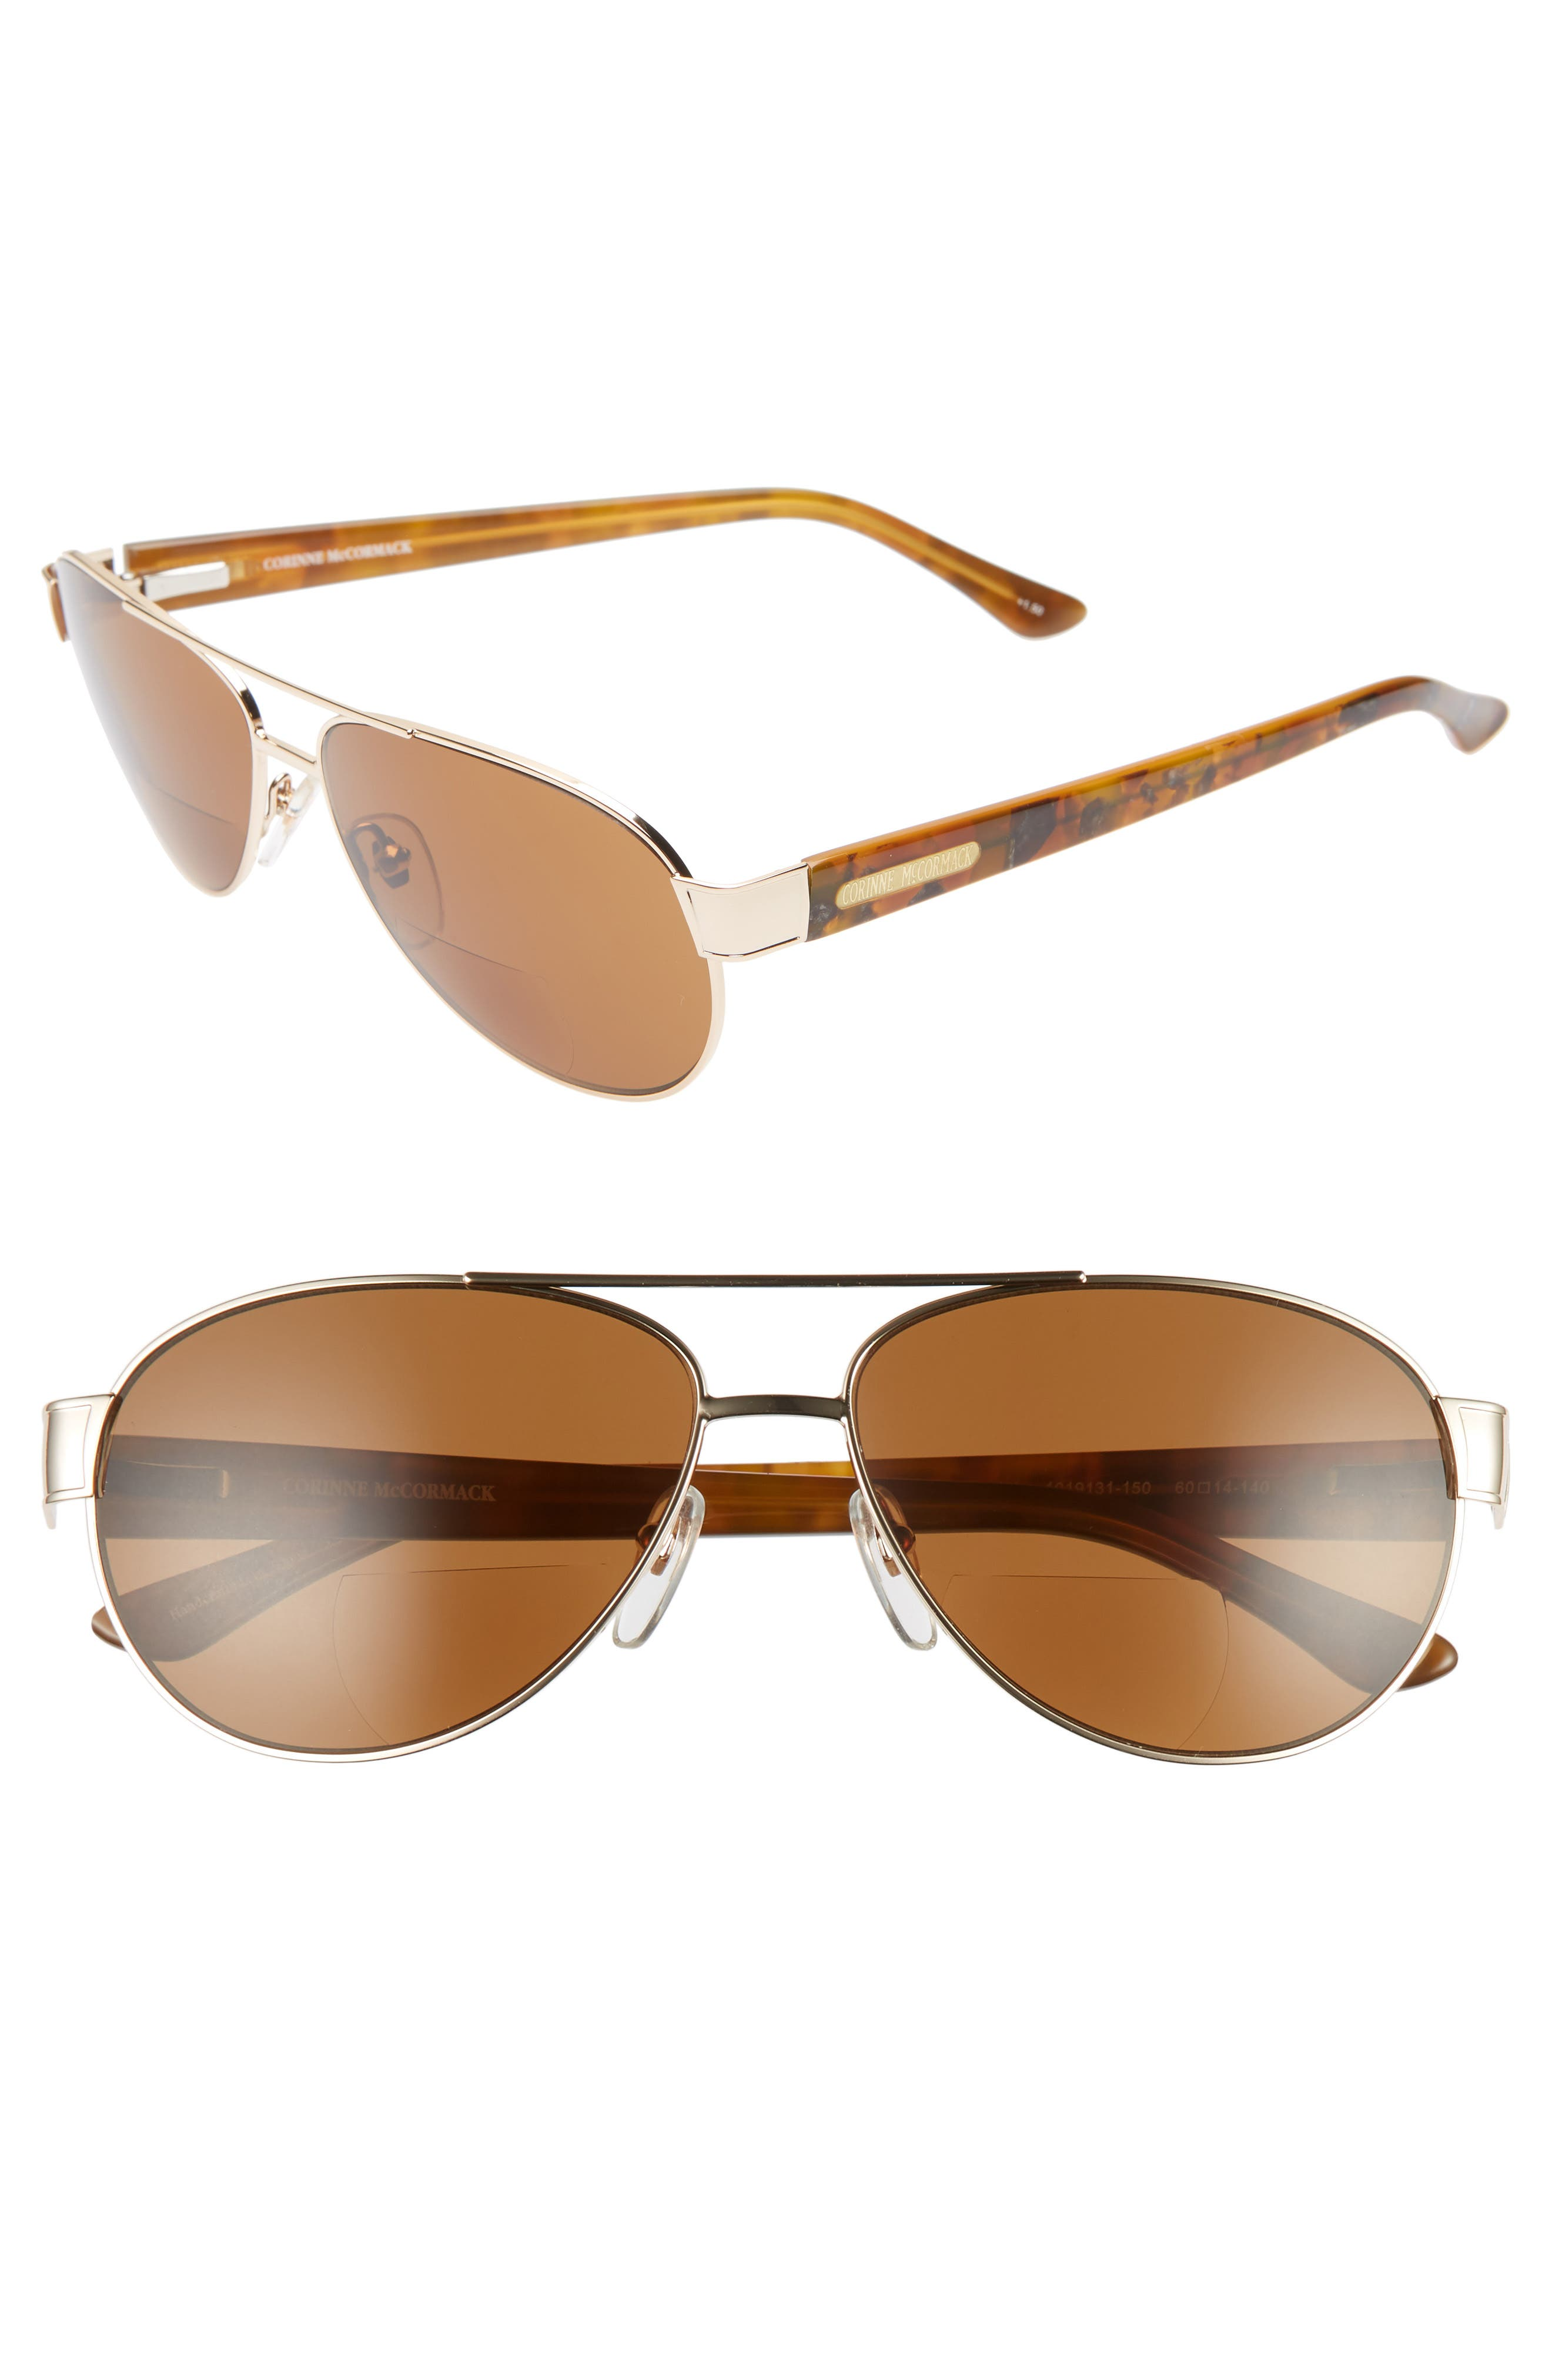 CORINNE MCCORMACK Alicia 60Mm Optical Sunglasses - Brown/ Gold